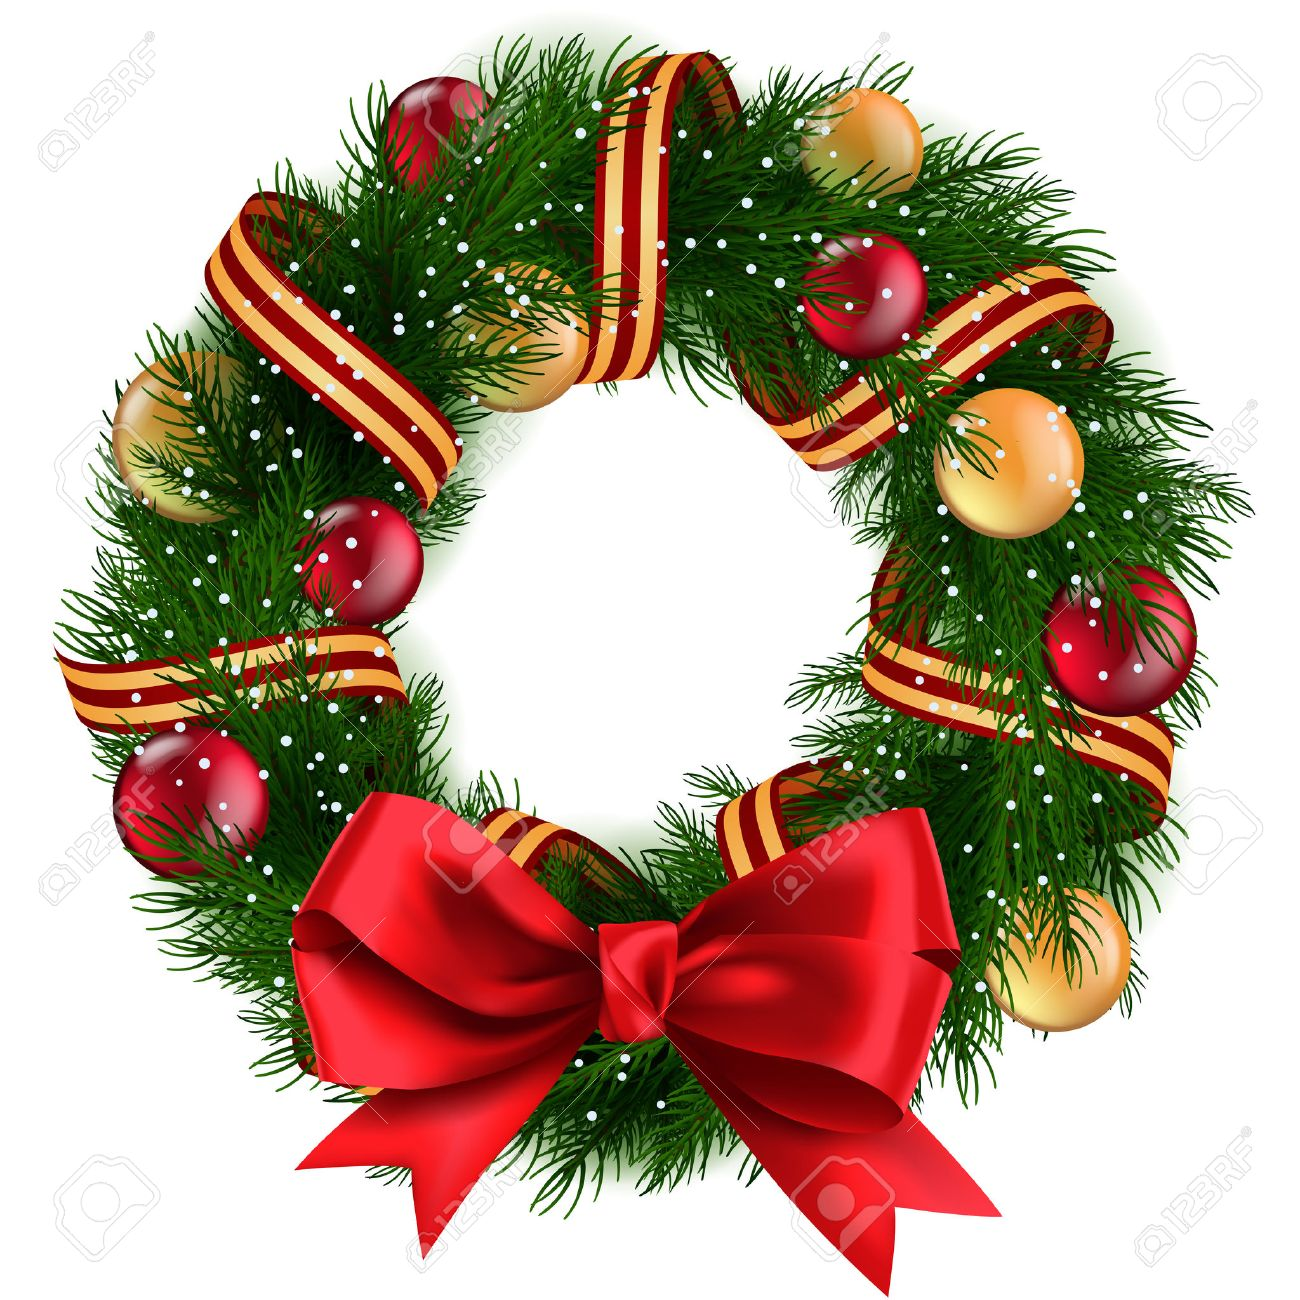 Christmas Wreath With Ribbons Balls And Bow Isolated